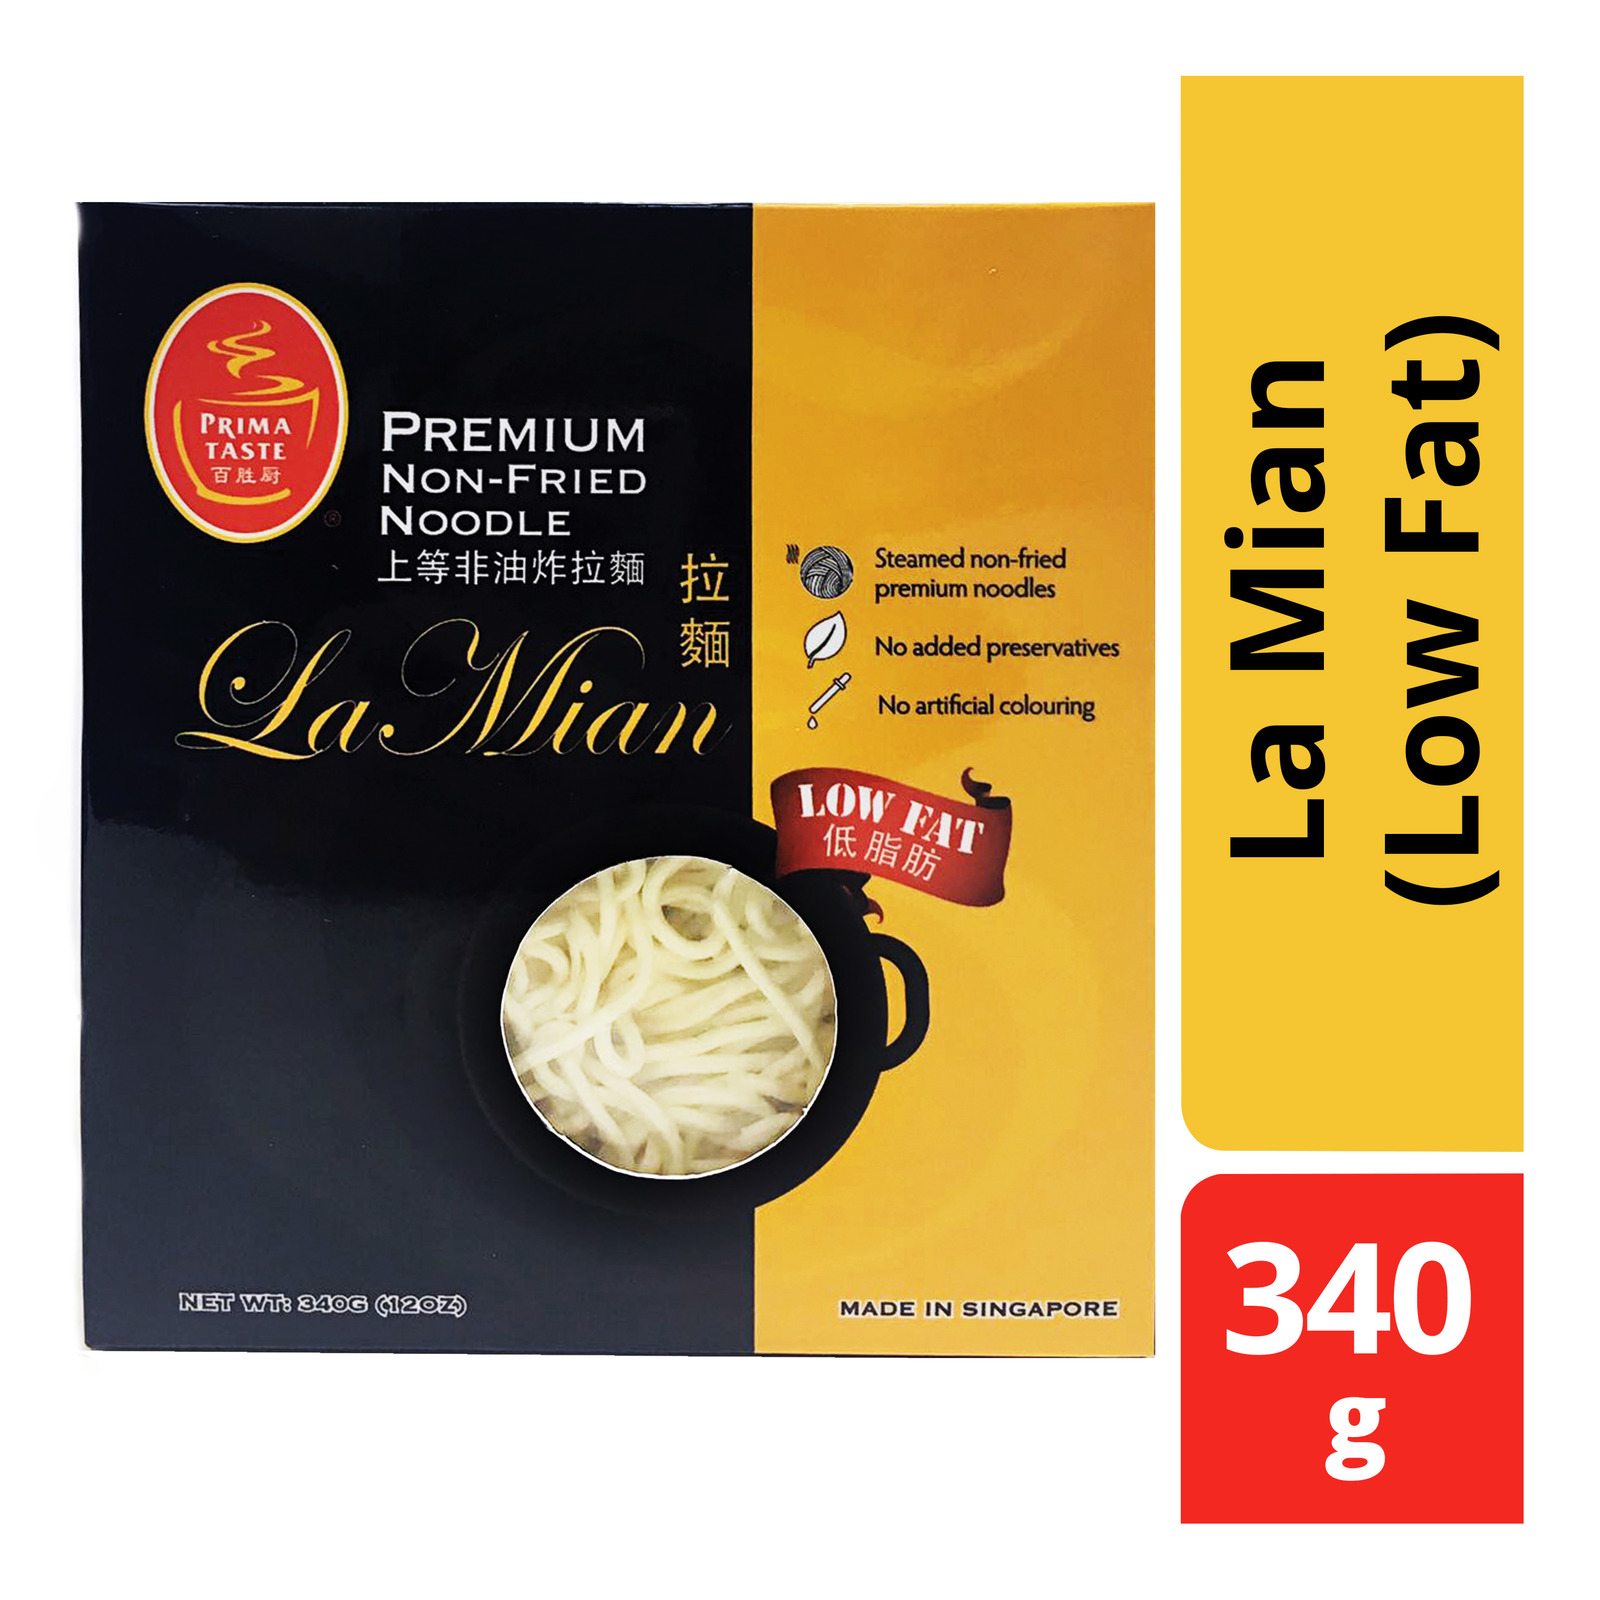 Prima Taste Premium Non-Fried La Mian (Low Fat)